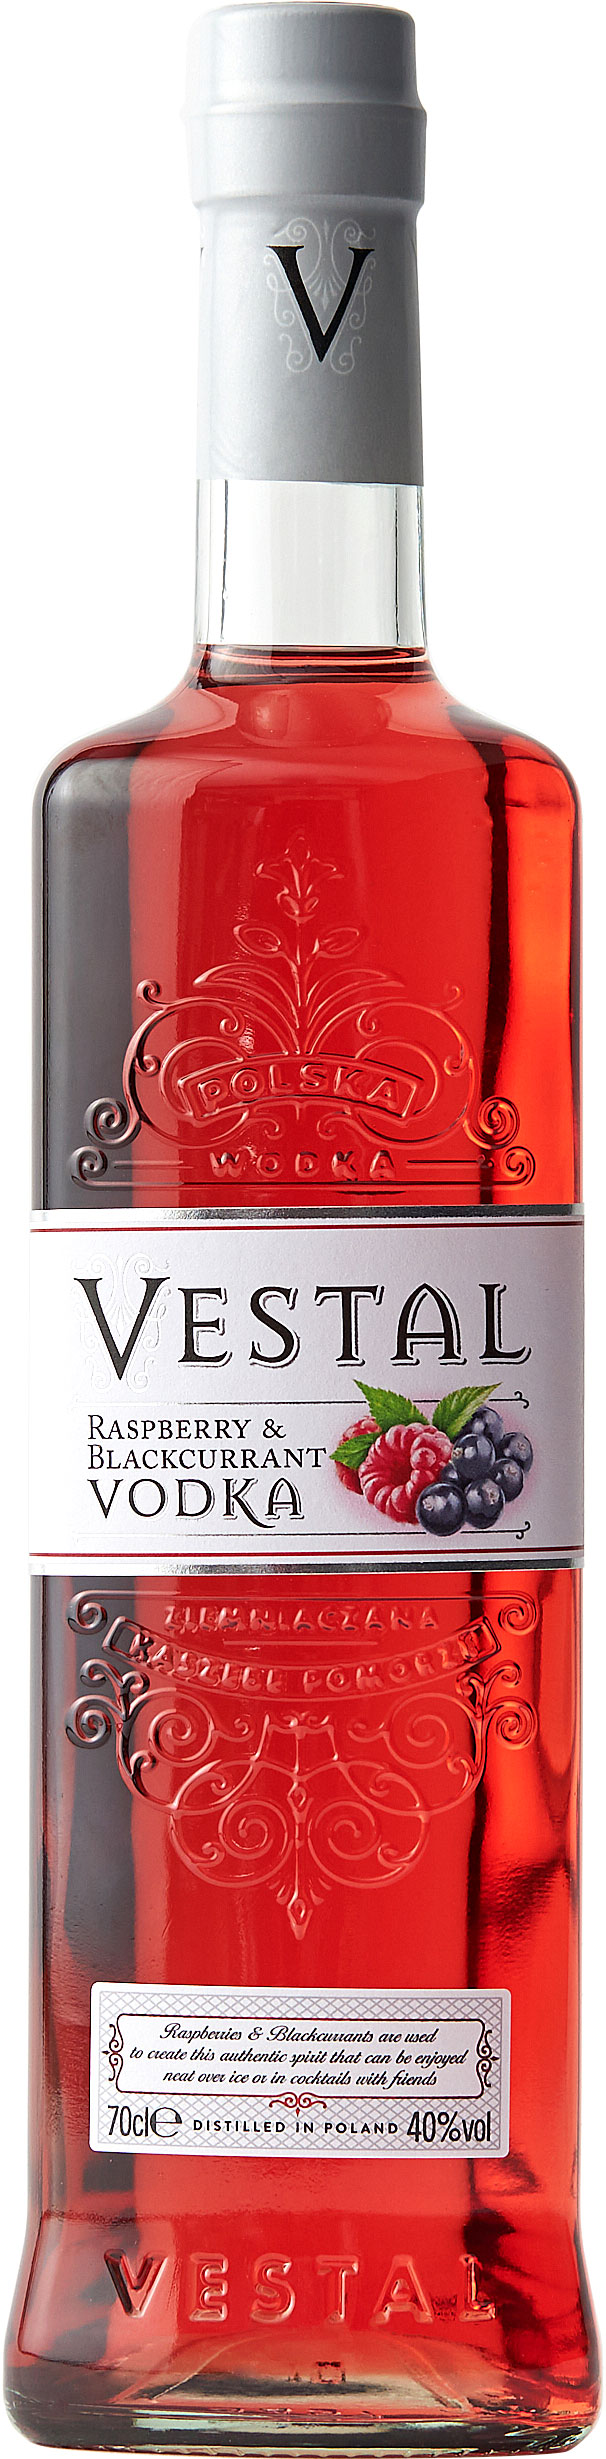 Vestal - Raspberry & Blackcurrant Vodka 70cl Bottle